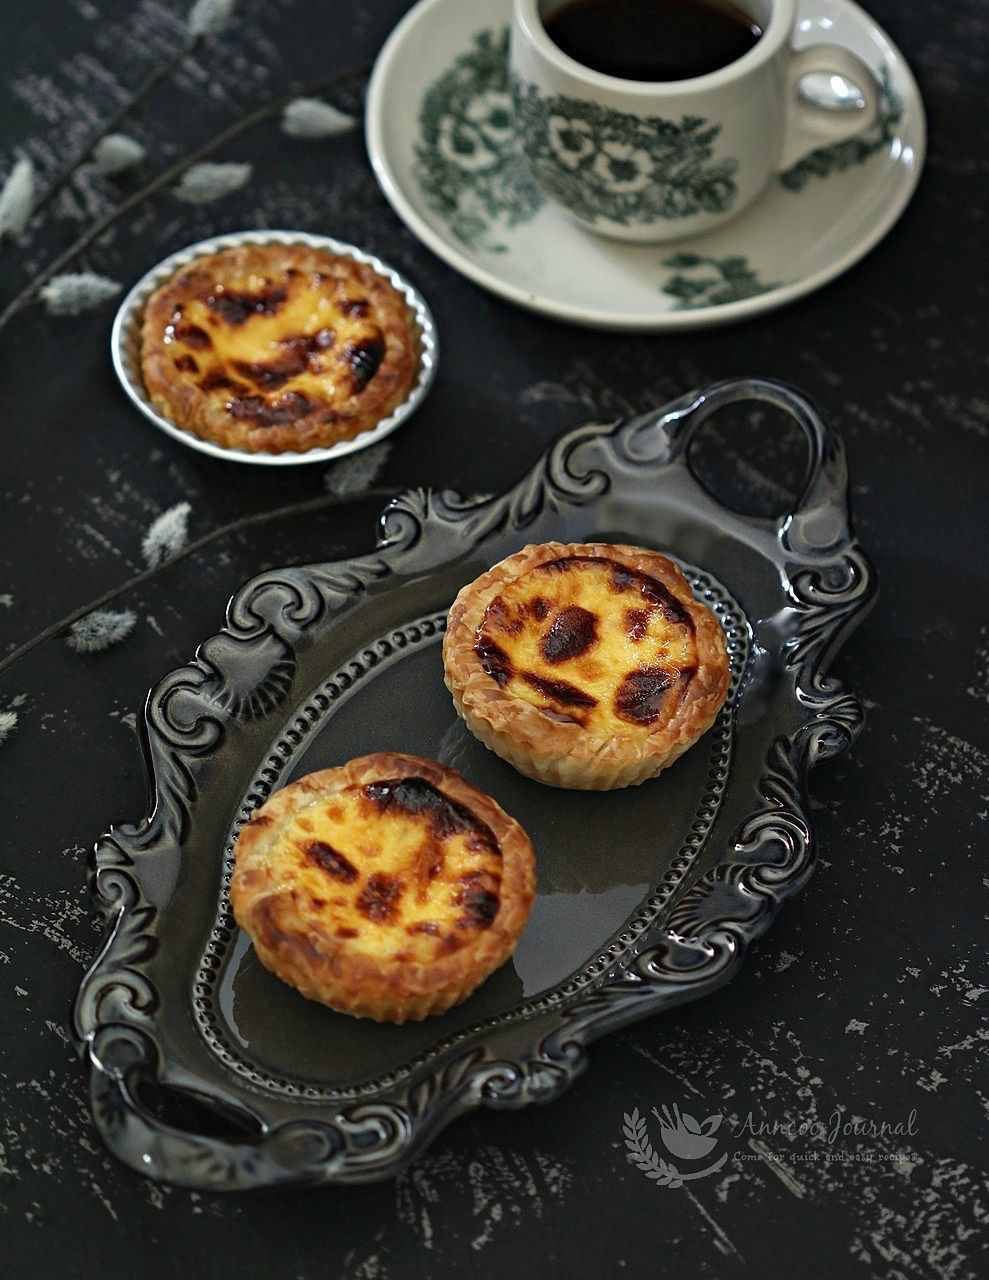 Portuguese Egg Tarts 葡式蛋挞 Anncoo Journal Recipe in